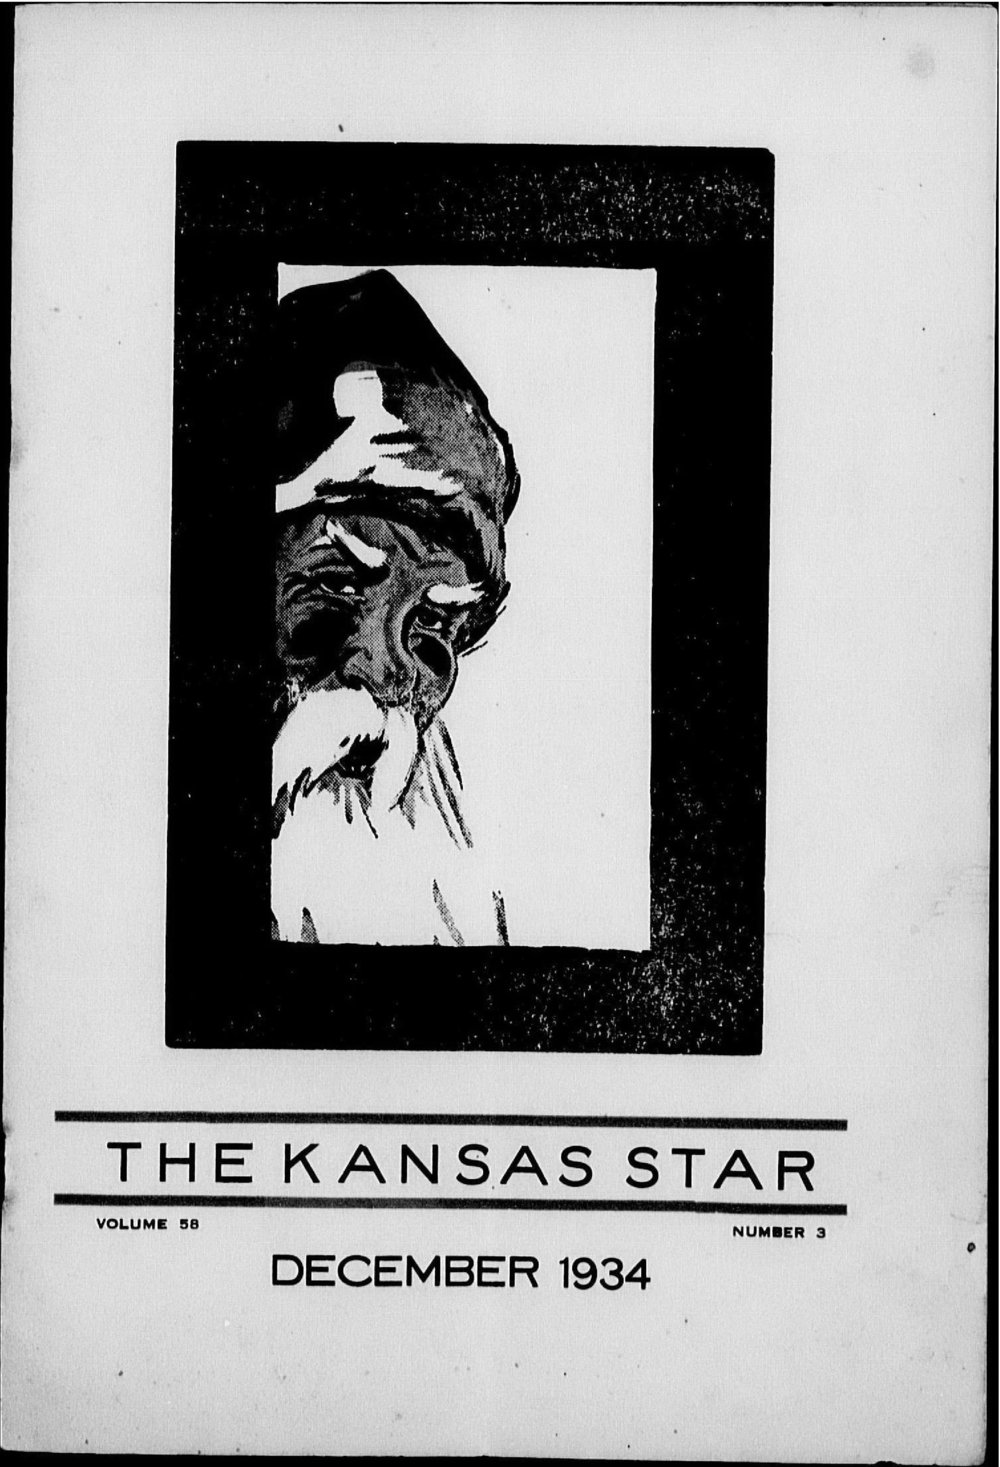 The Kansas Star, volume 58, number 3 - Front cover